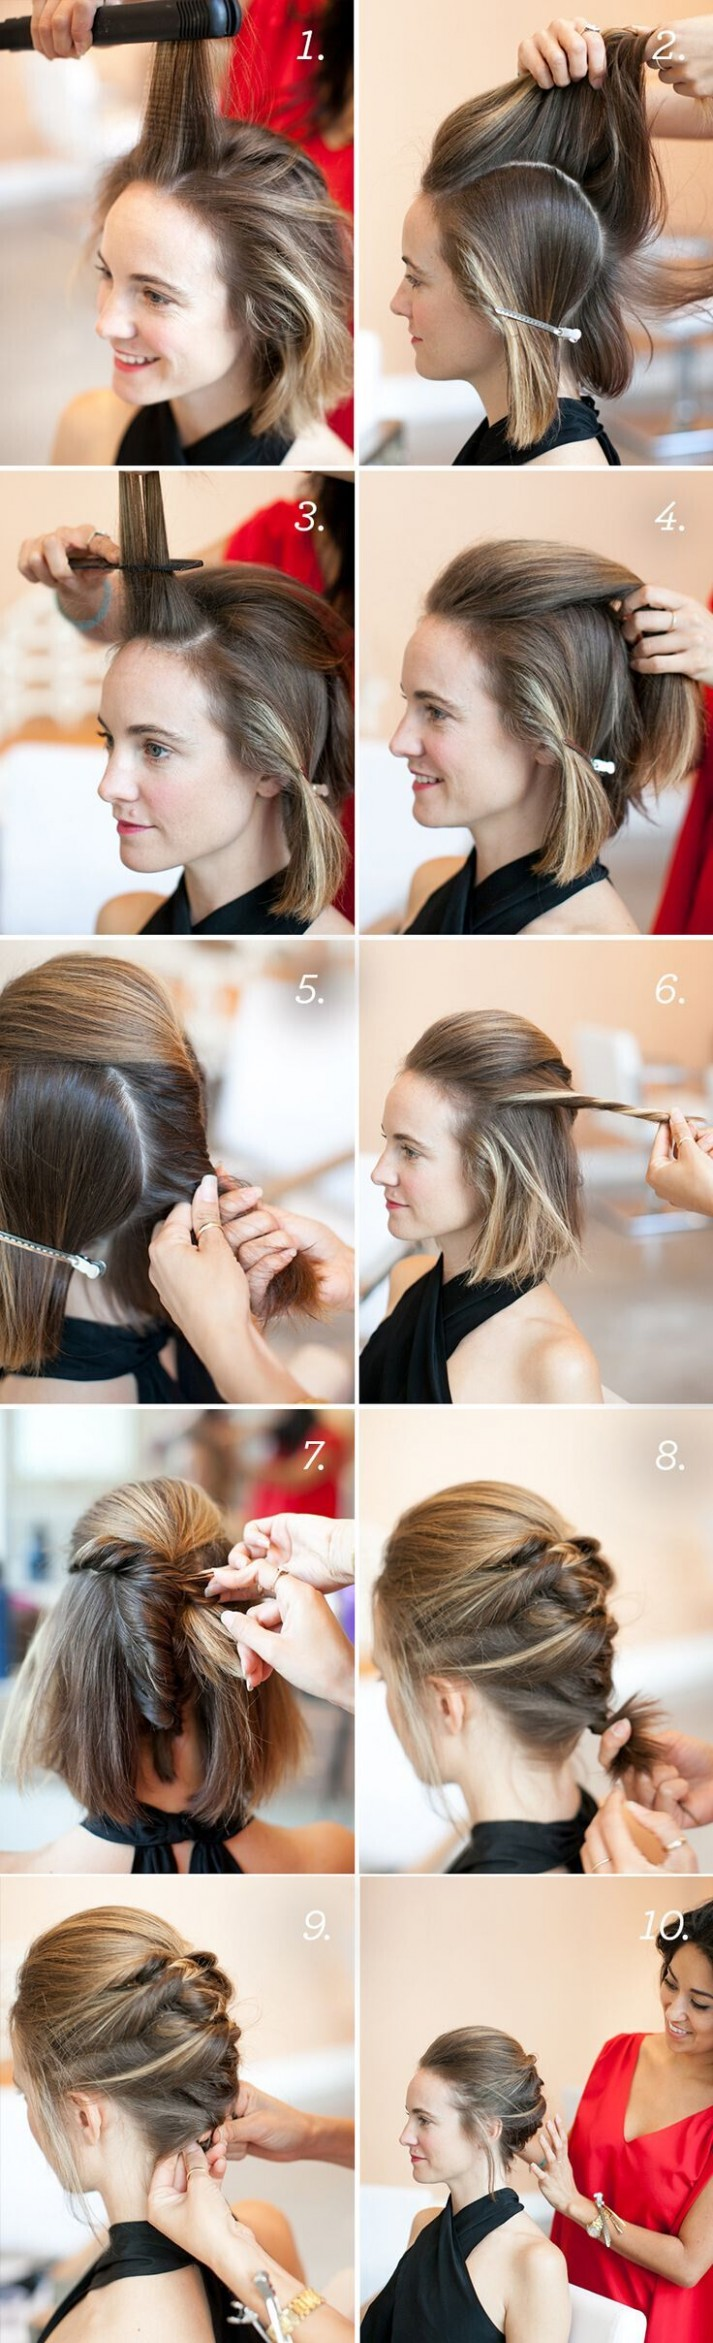 122 Short Hairstyles For Girls: With Or Without Curls! (12 Bob Hair Updo